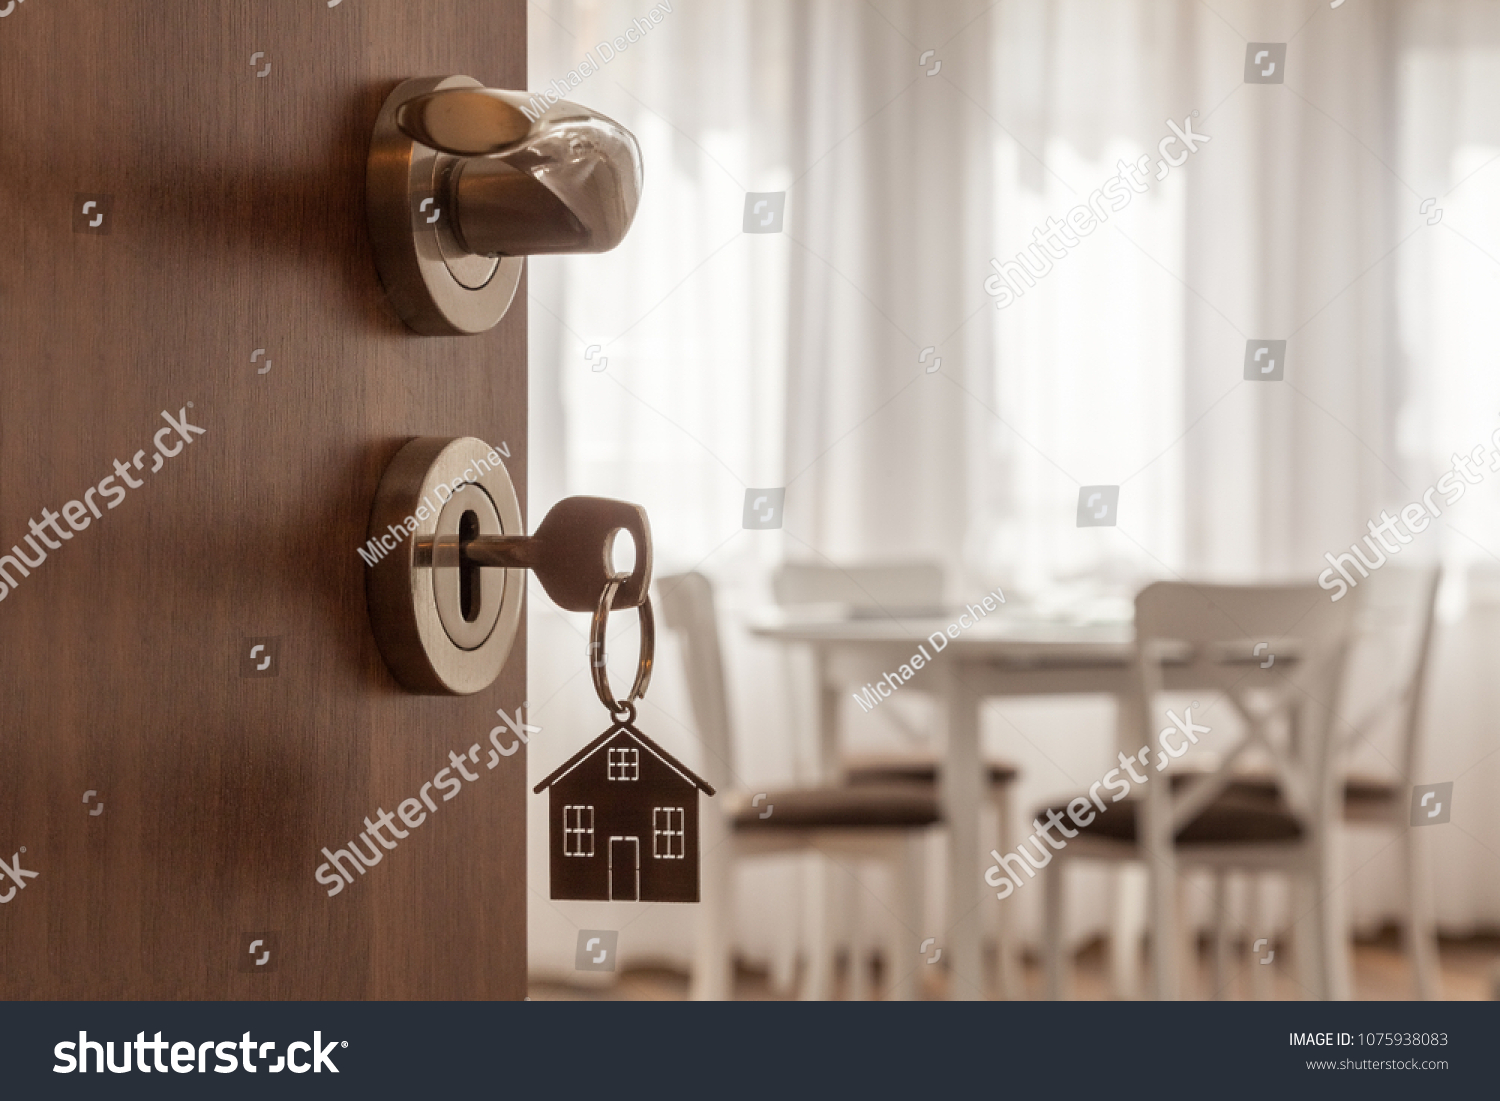 Open door to a new home. Door handle with key and home shaped keychain. Mortgage, investment, real estate, property and new home concept #1075938083